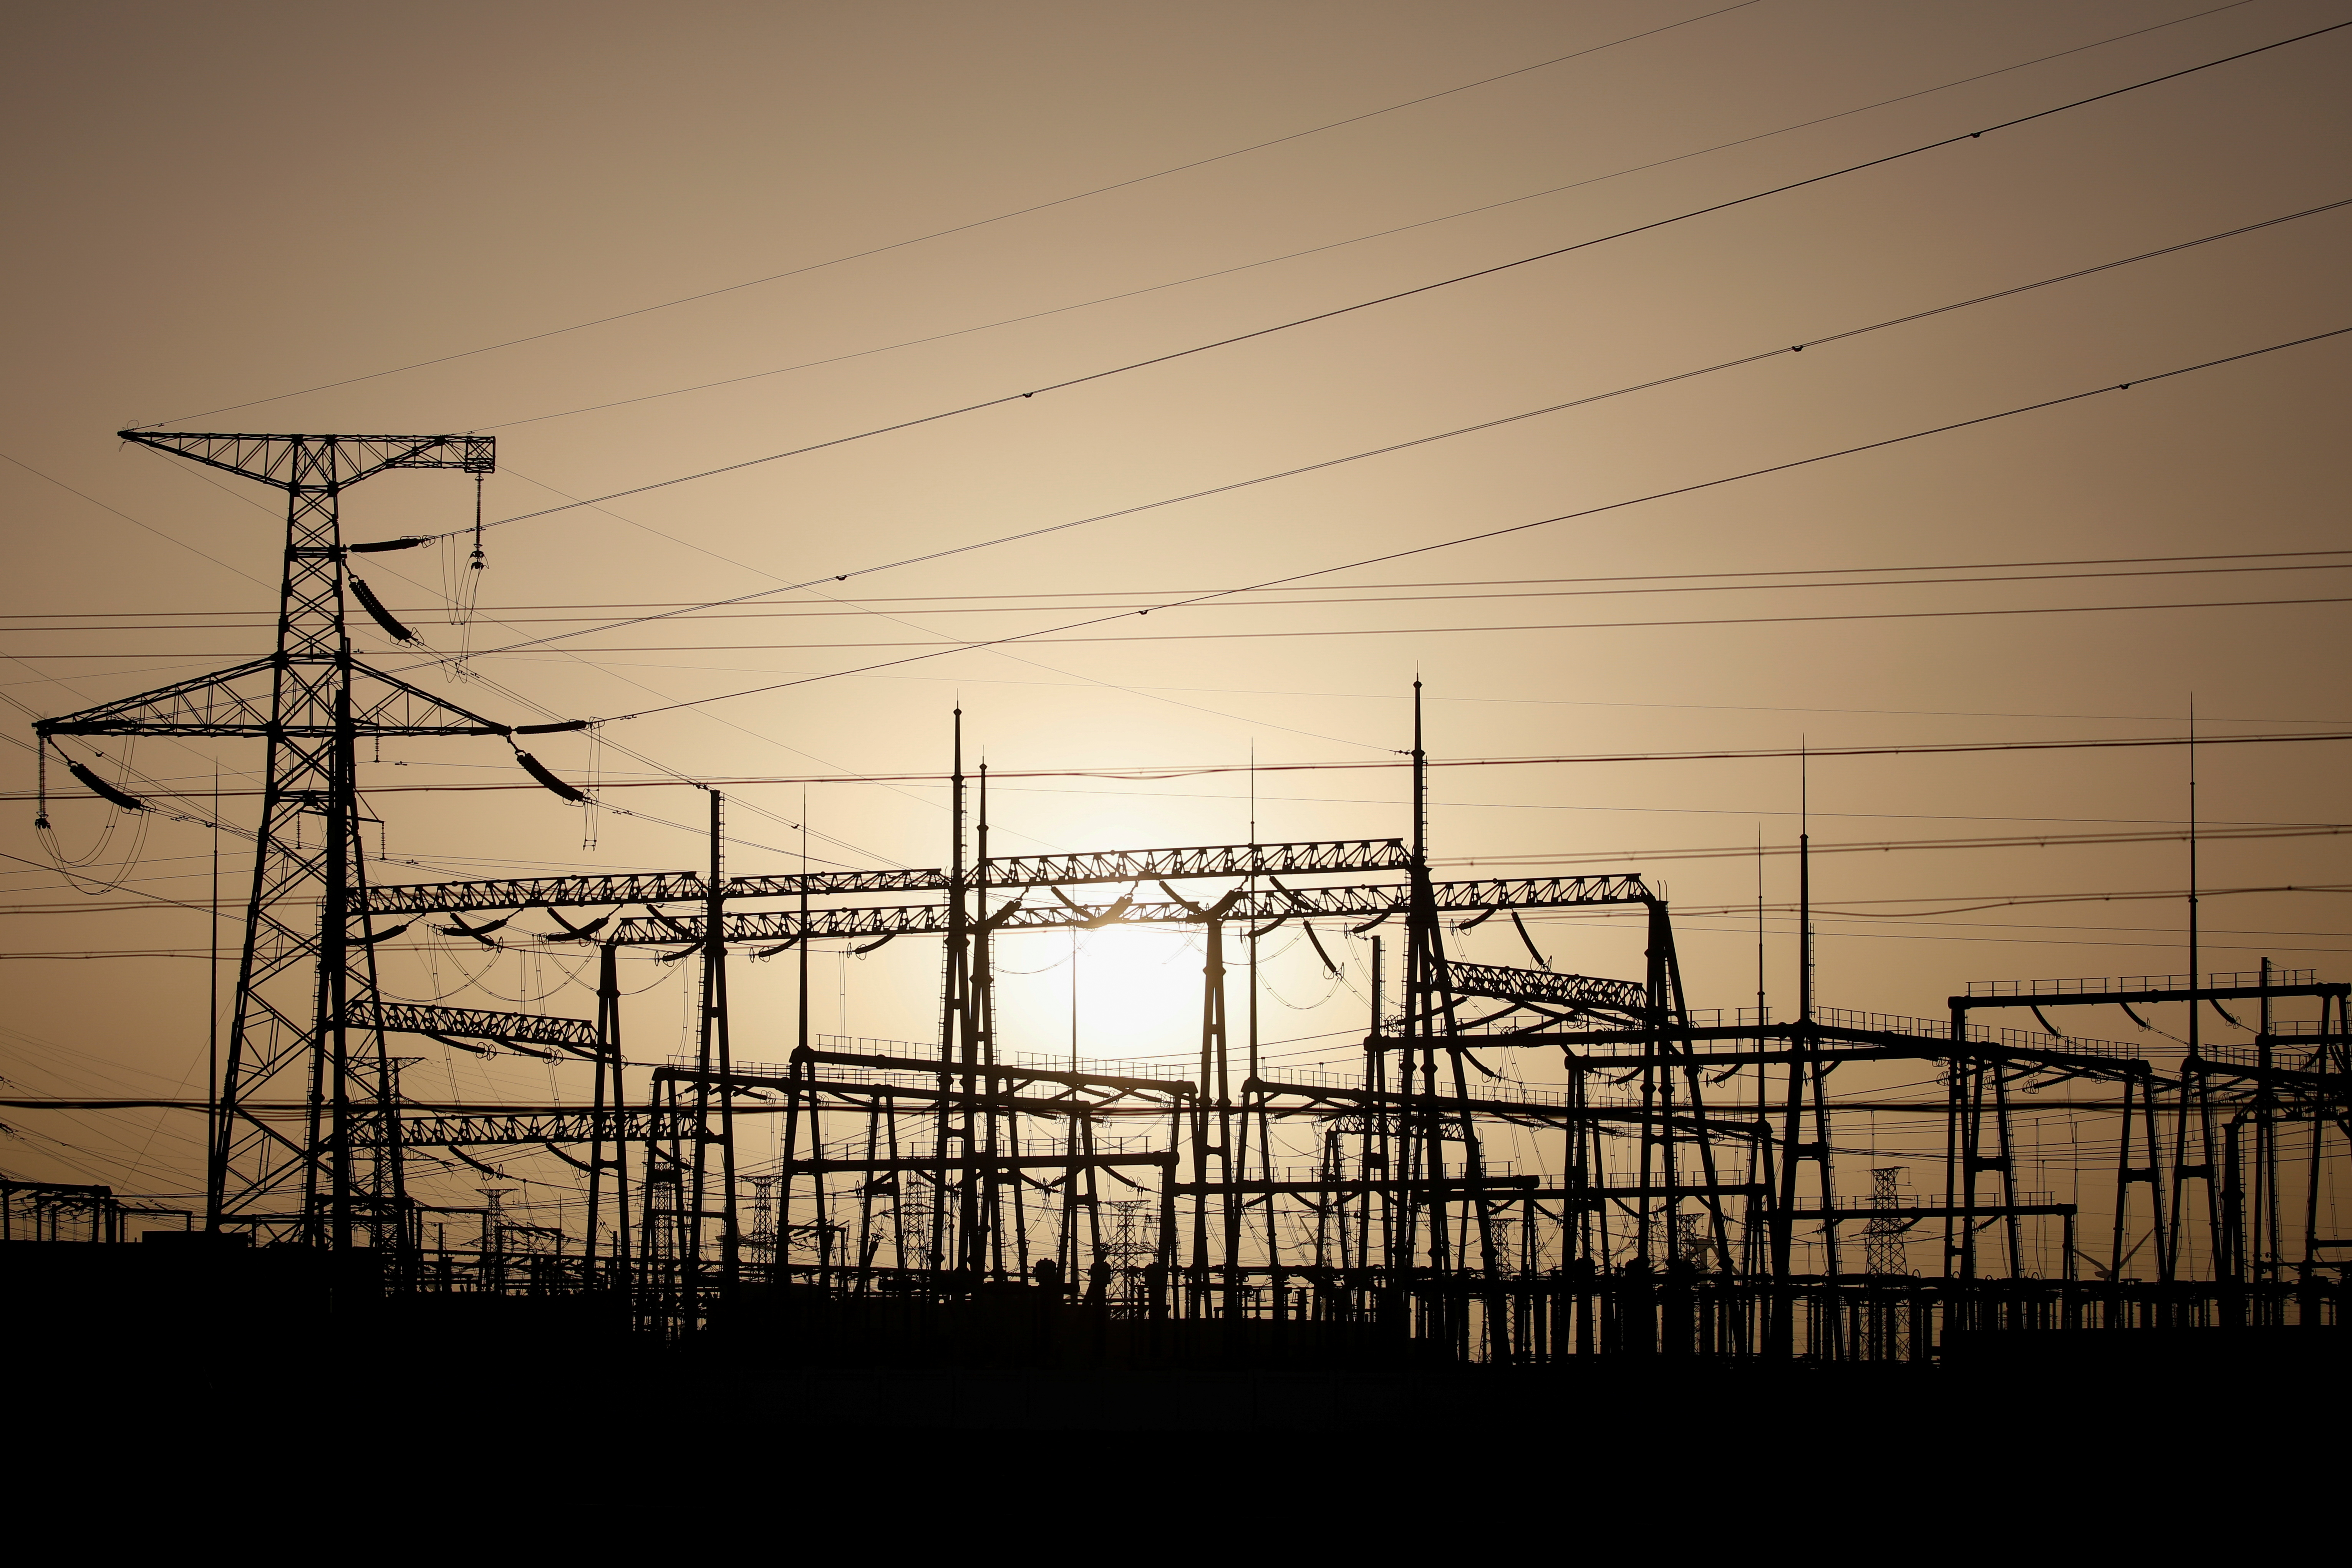 Electricity pylons and power lines are pictured at a power station near Yumen, Gansu province, China September 25, 2020. REUTERS/Carlos Garcia Rawlins